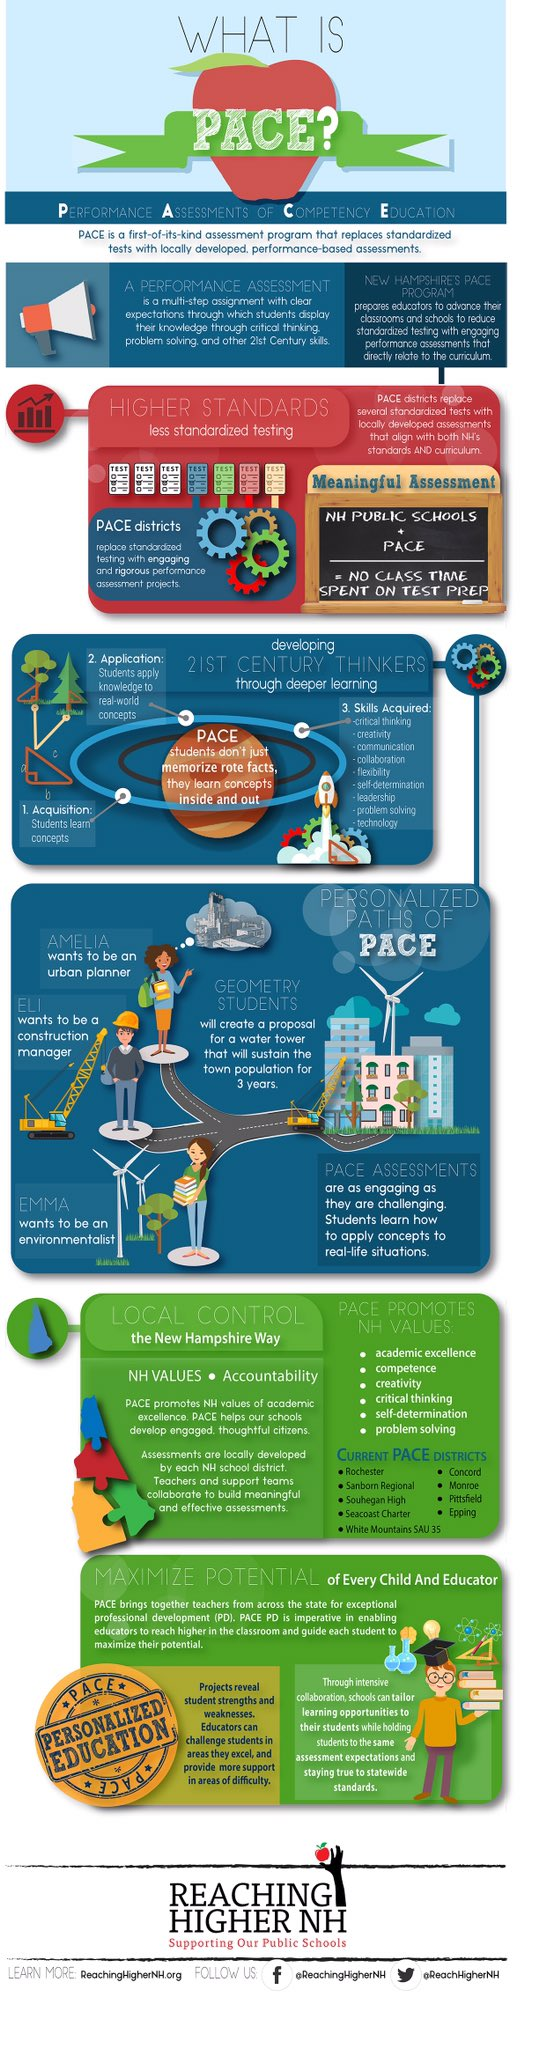 What is Performance Assessment of Competency Education (PACE) Infographic  https://t.co/WpWtobHG2C #edchatMENA #edchat https://t.co/eGPnpGU1mk